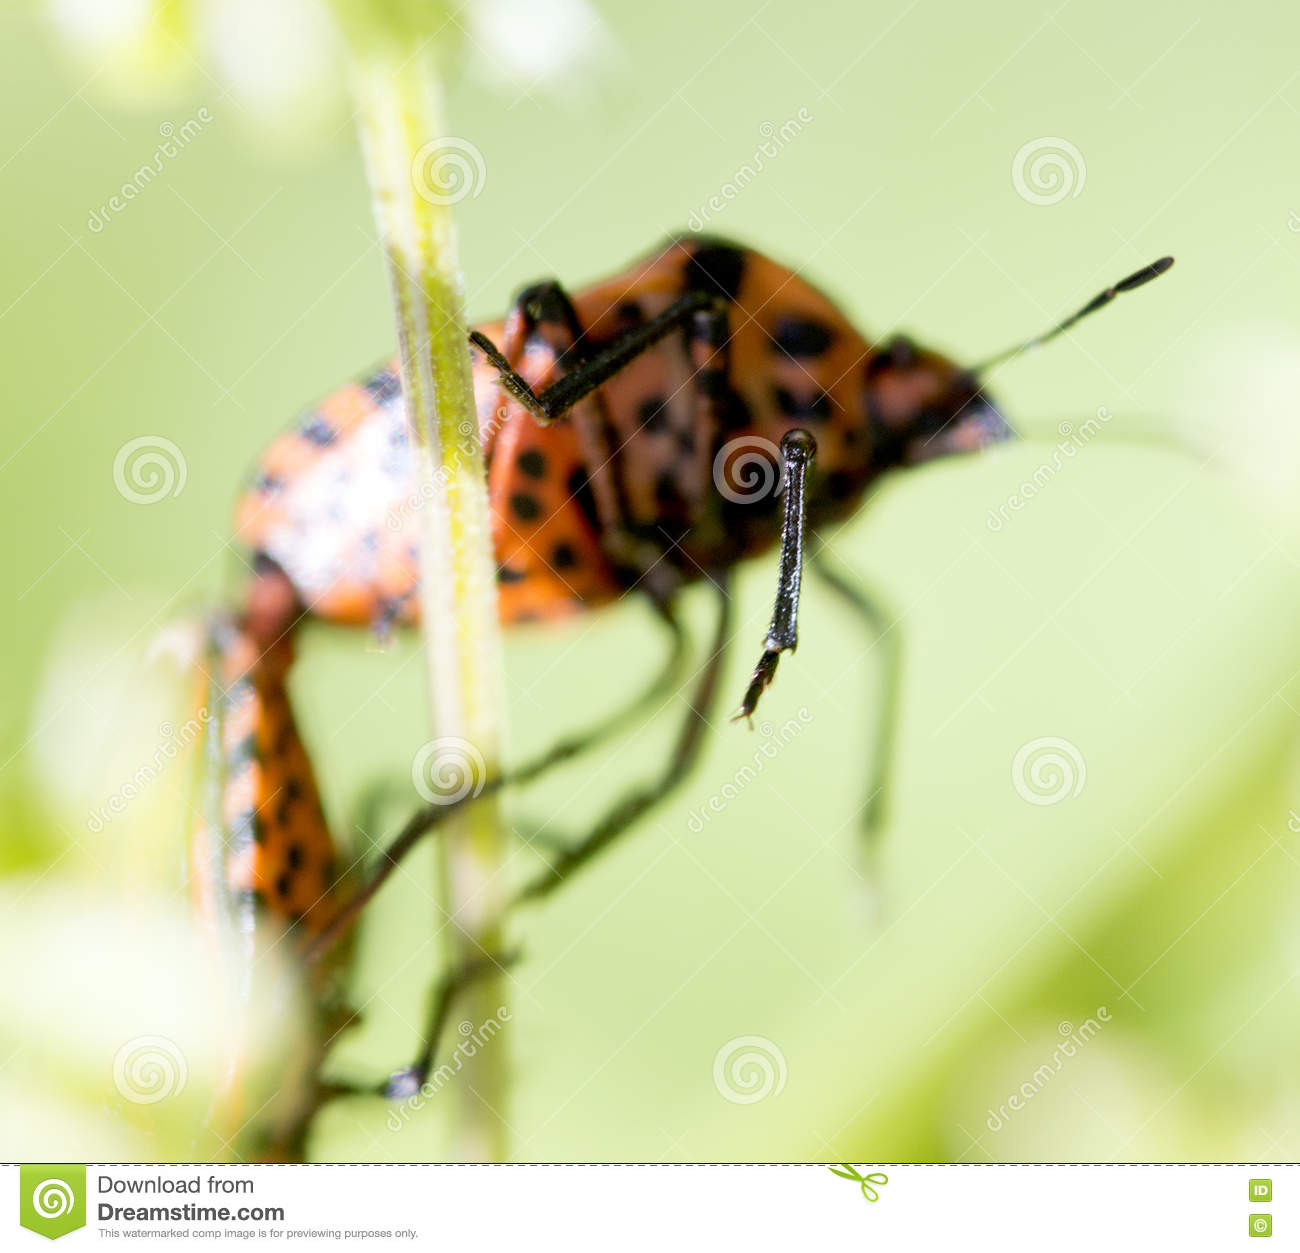 Red And Black Insect Graphosoma Lineatum Royalty Free Stock Images.